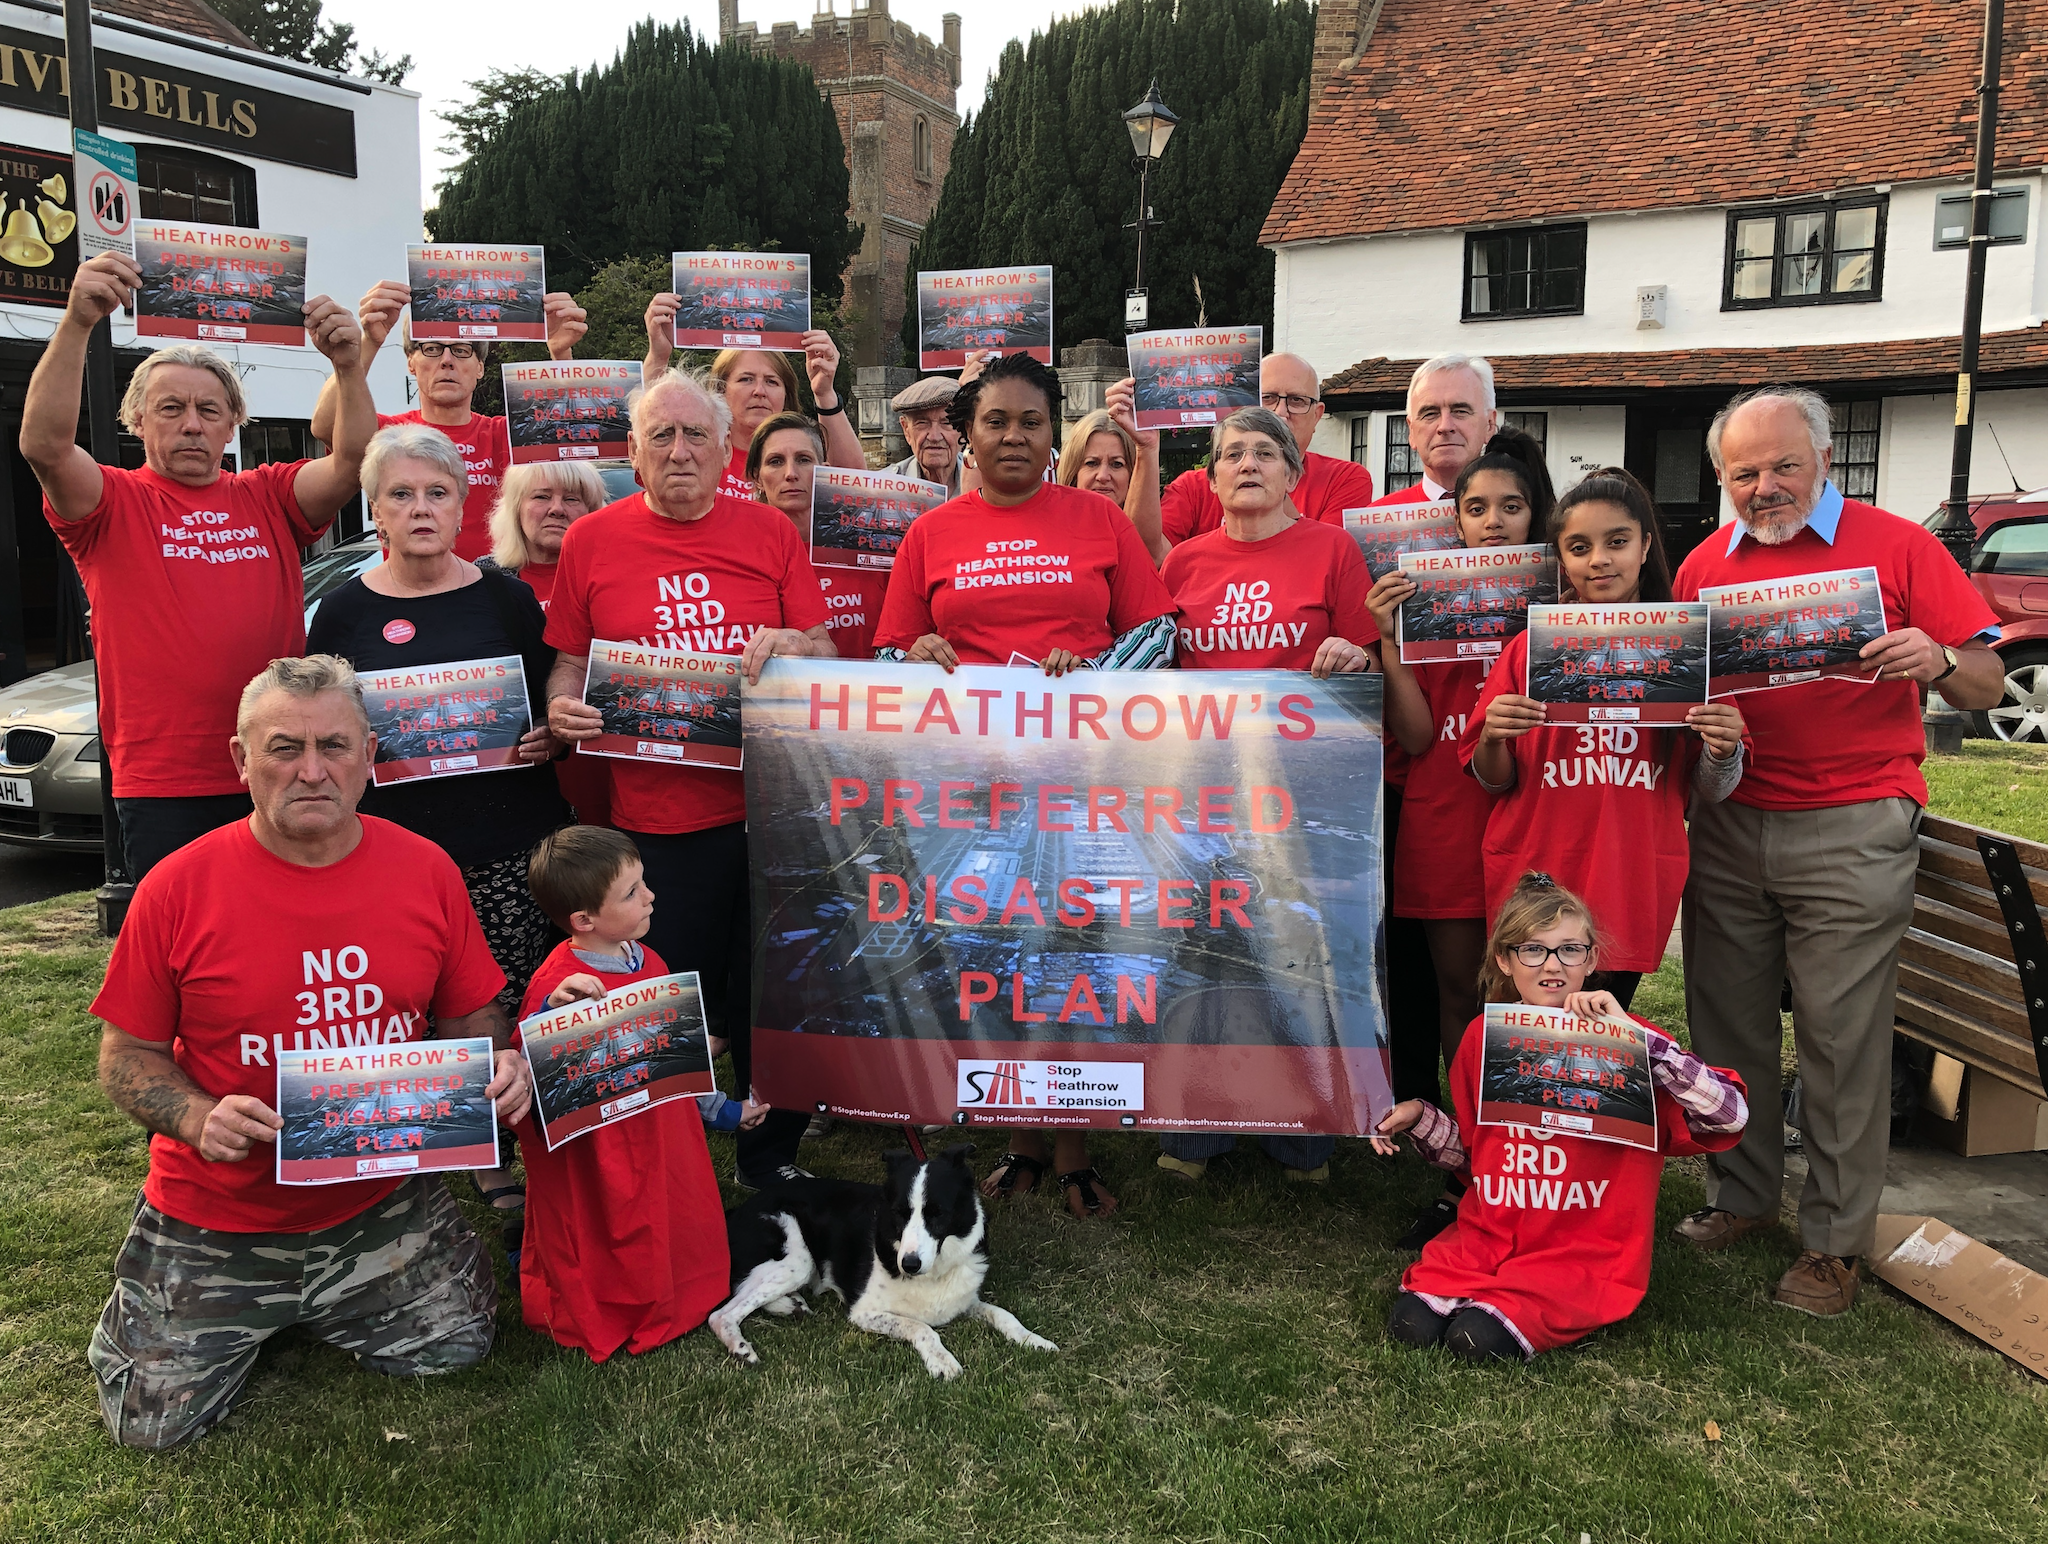 John McDonnell MP joined residents in Heathrow Villages to launch the Disasterplan campaign, July 2019